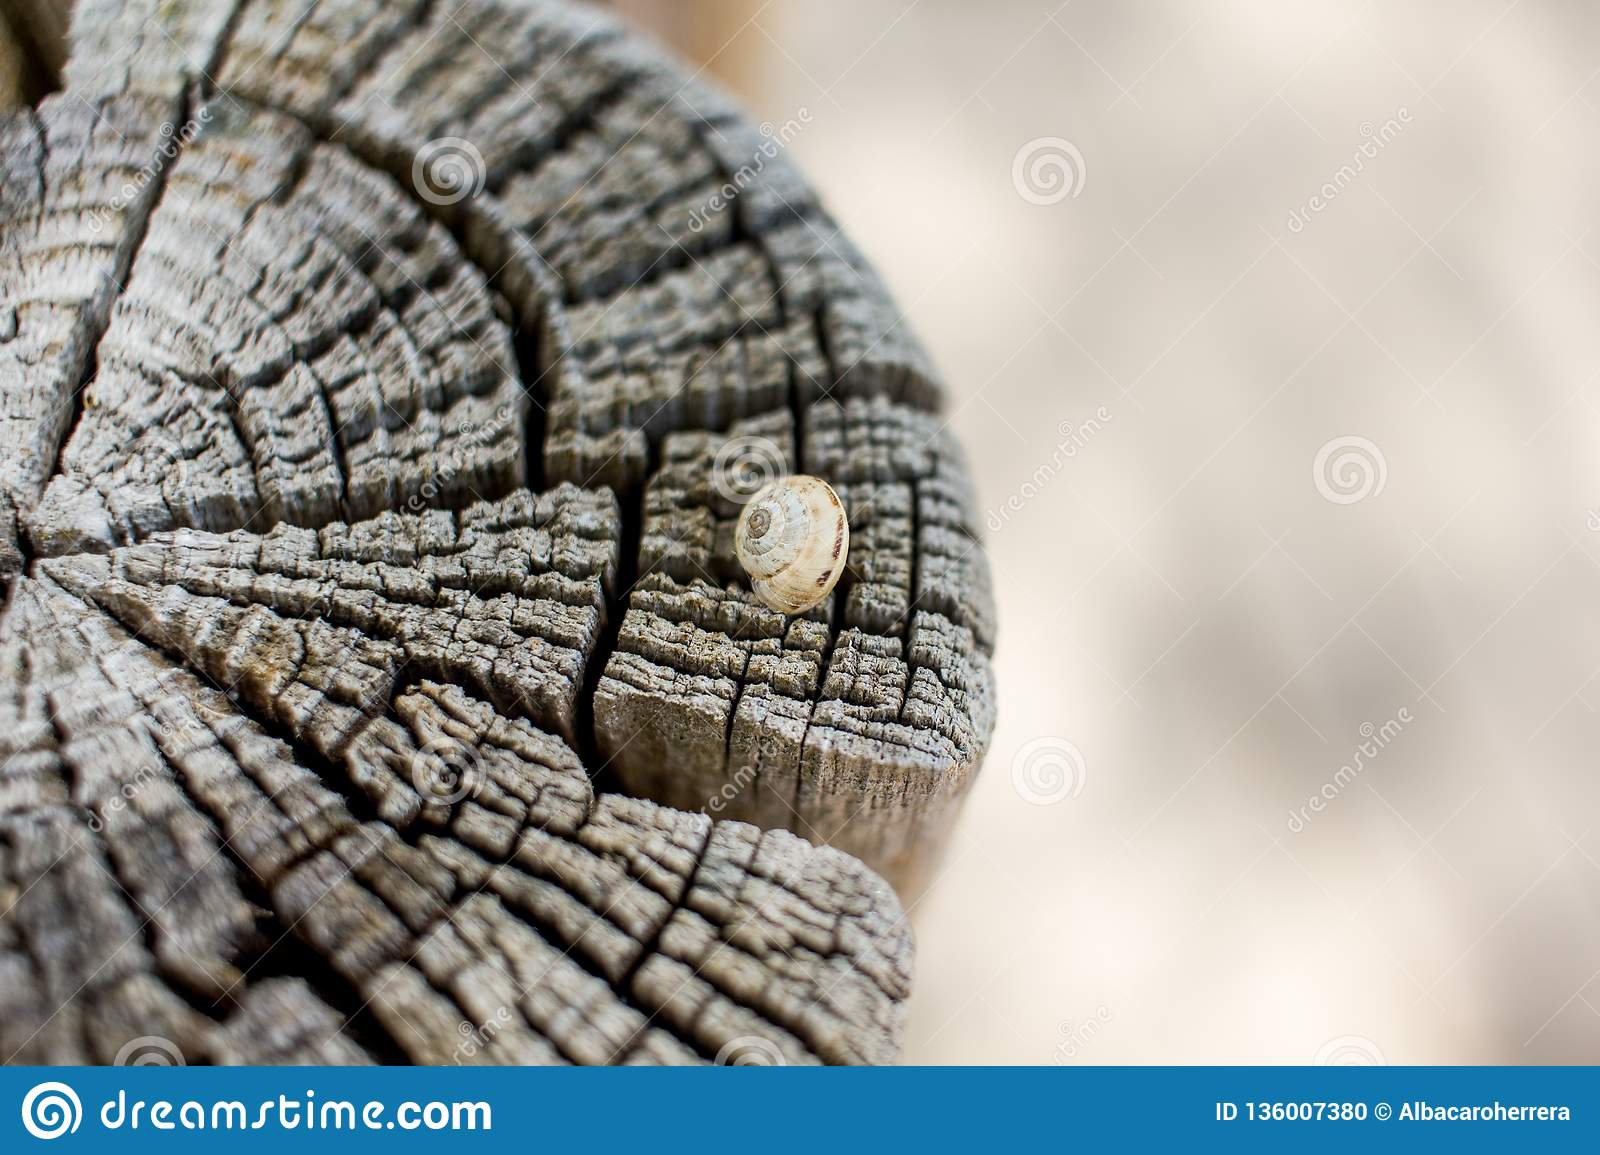 Close up of a snail on a cut trunk